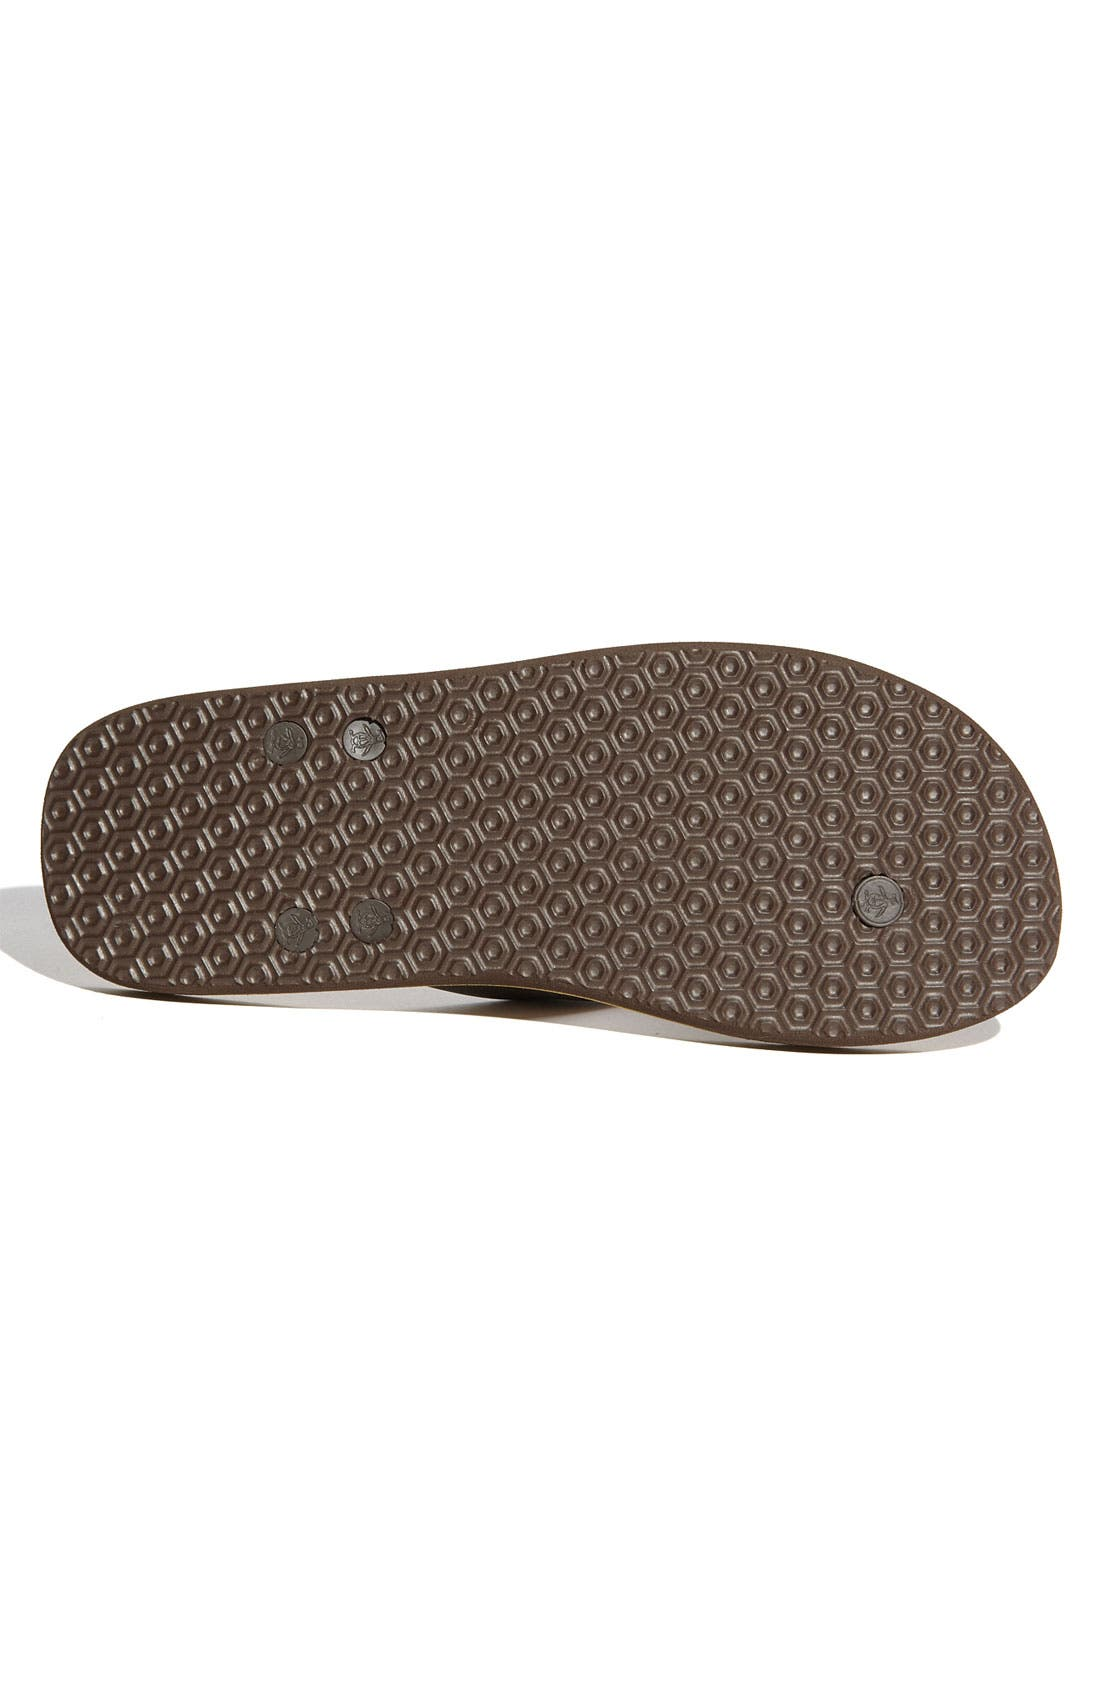 Alternate Image 2  - Original Penguin 'Cork' Flip Flop